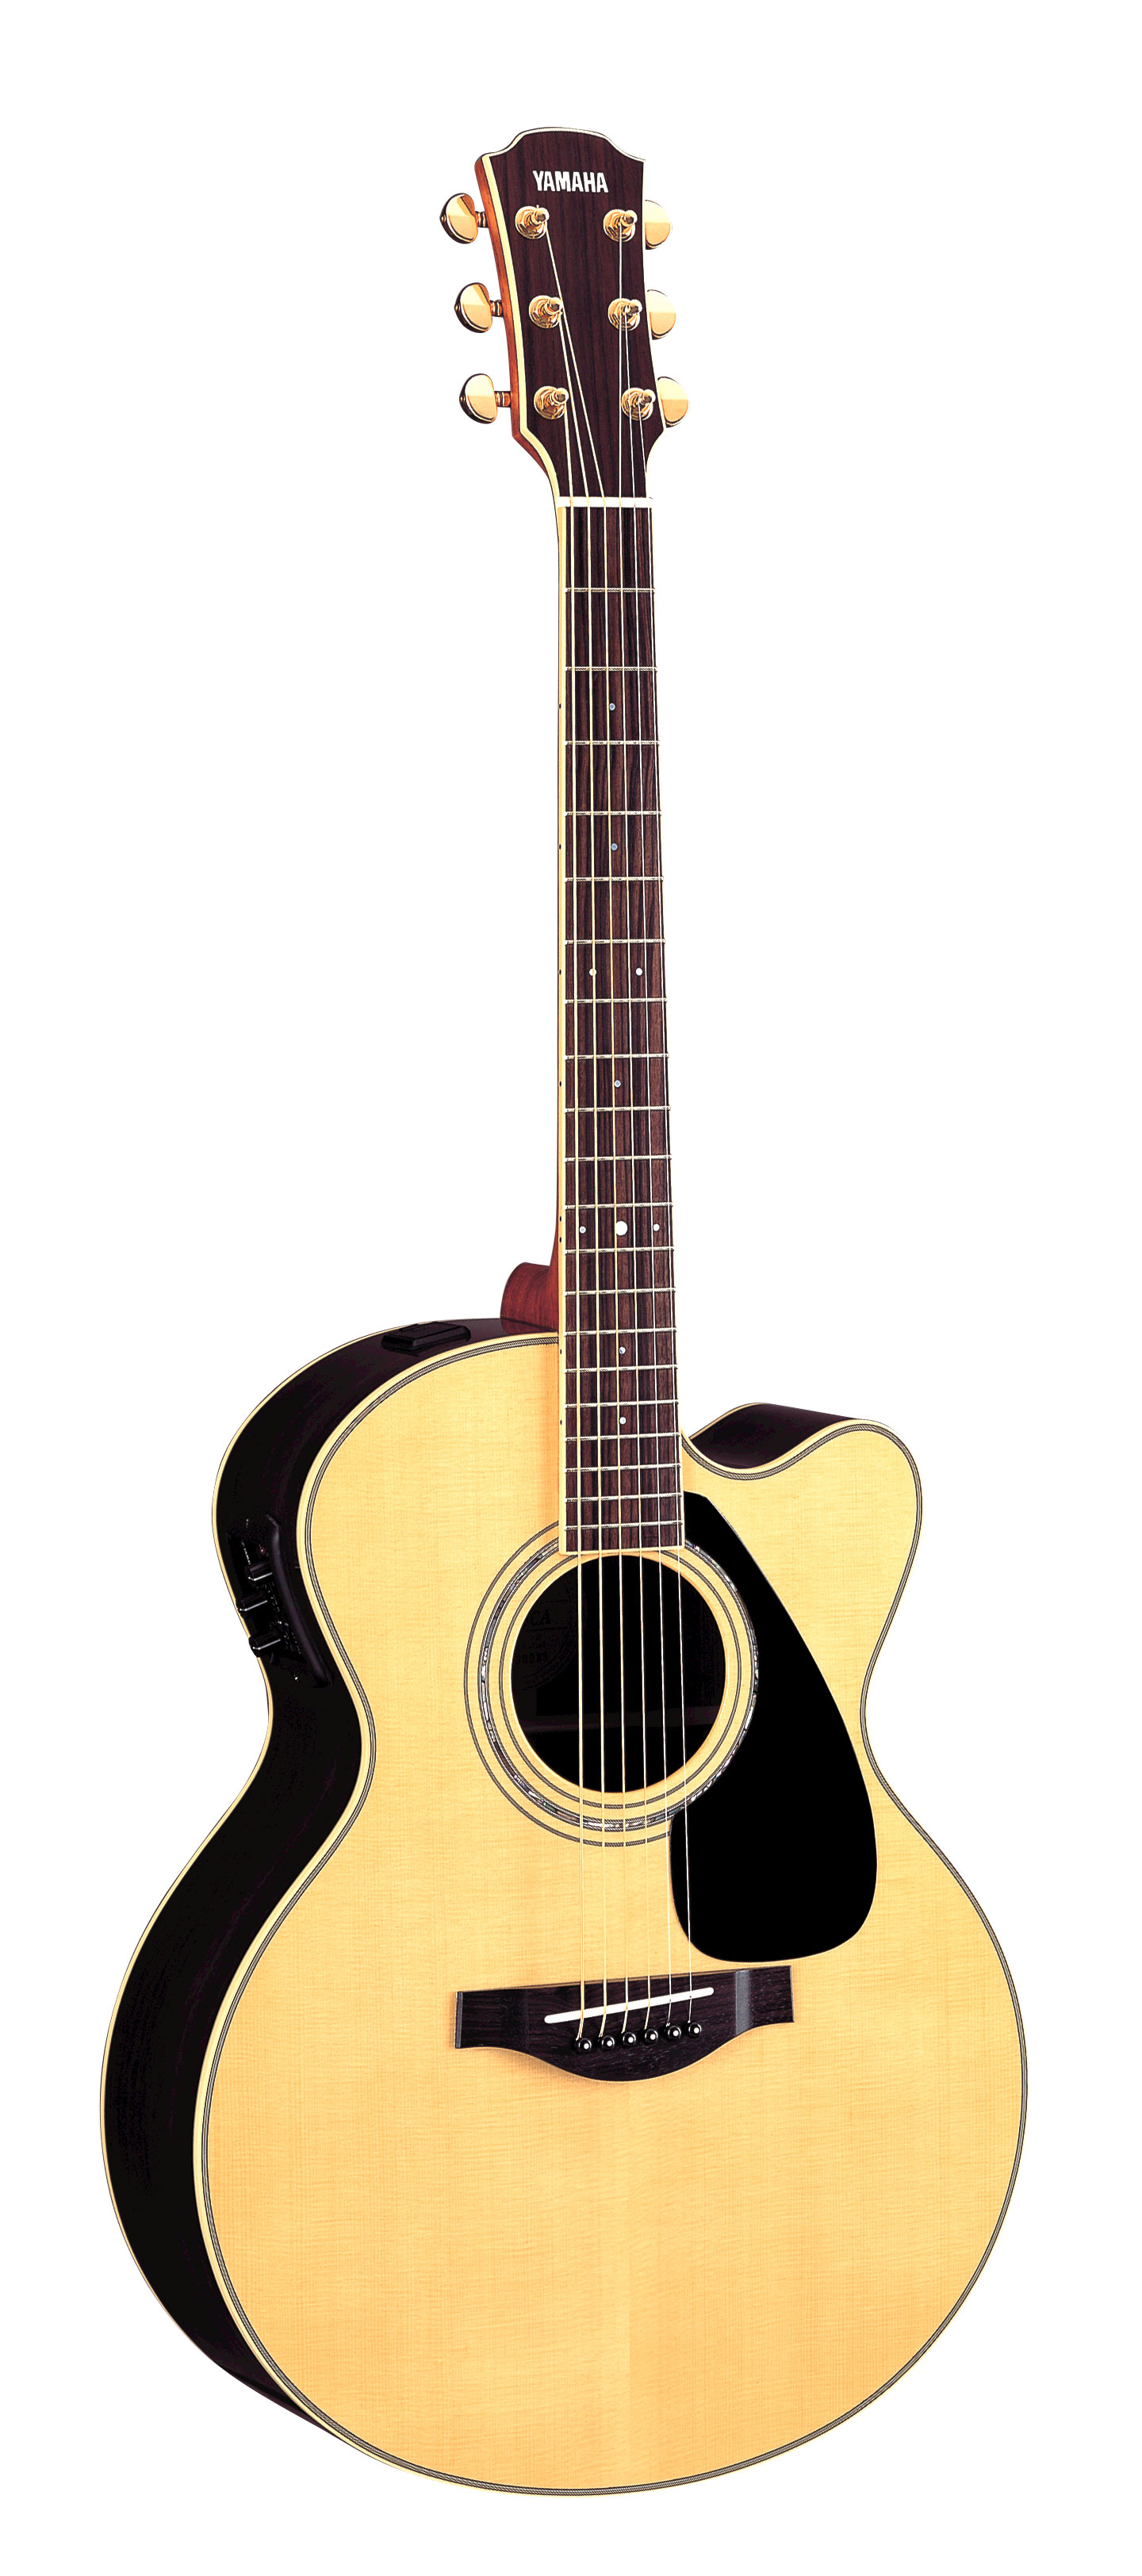 Yamaha Guitars Ireland